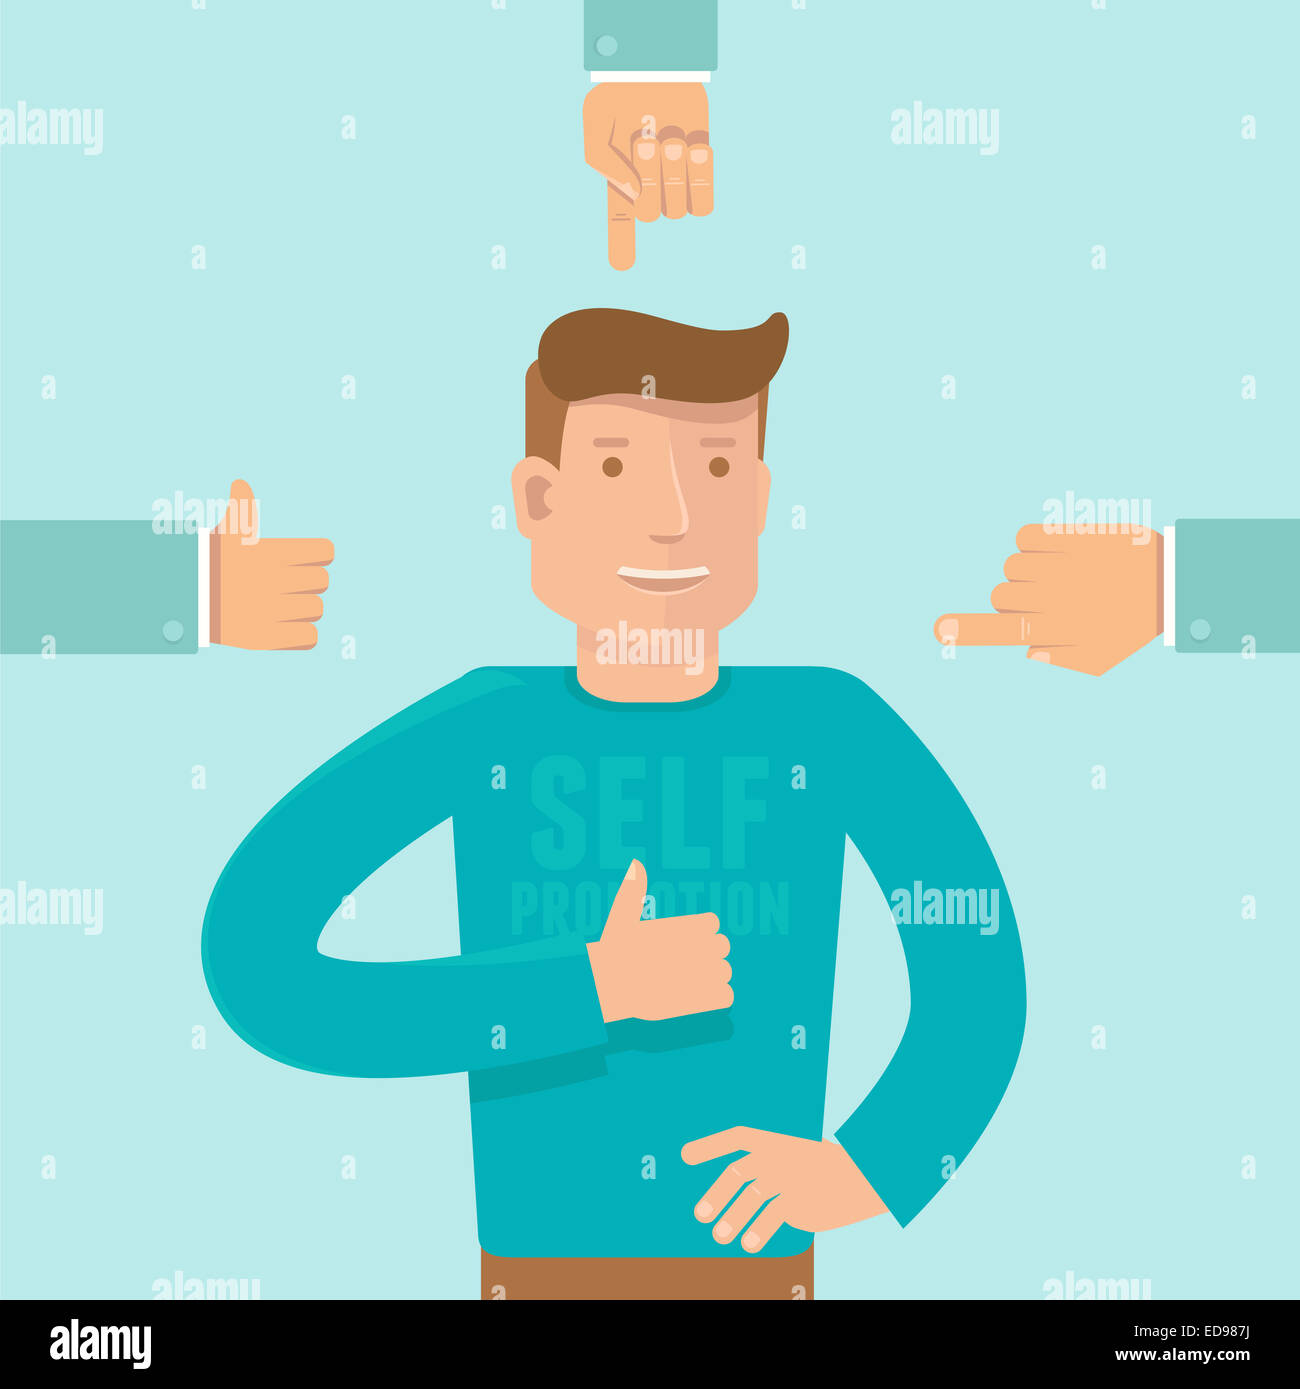 Self promotion concept in flat style - man showing like sign and business hands pointing at him - Stock Image